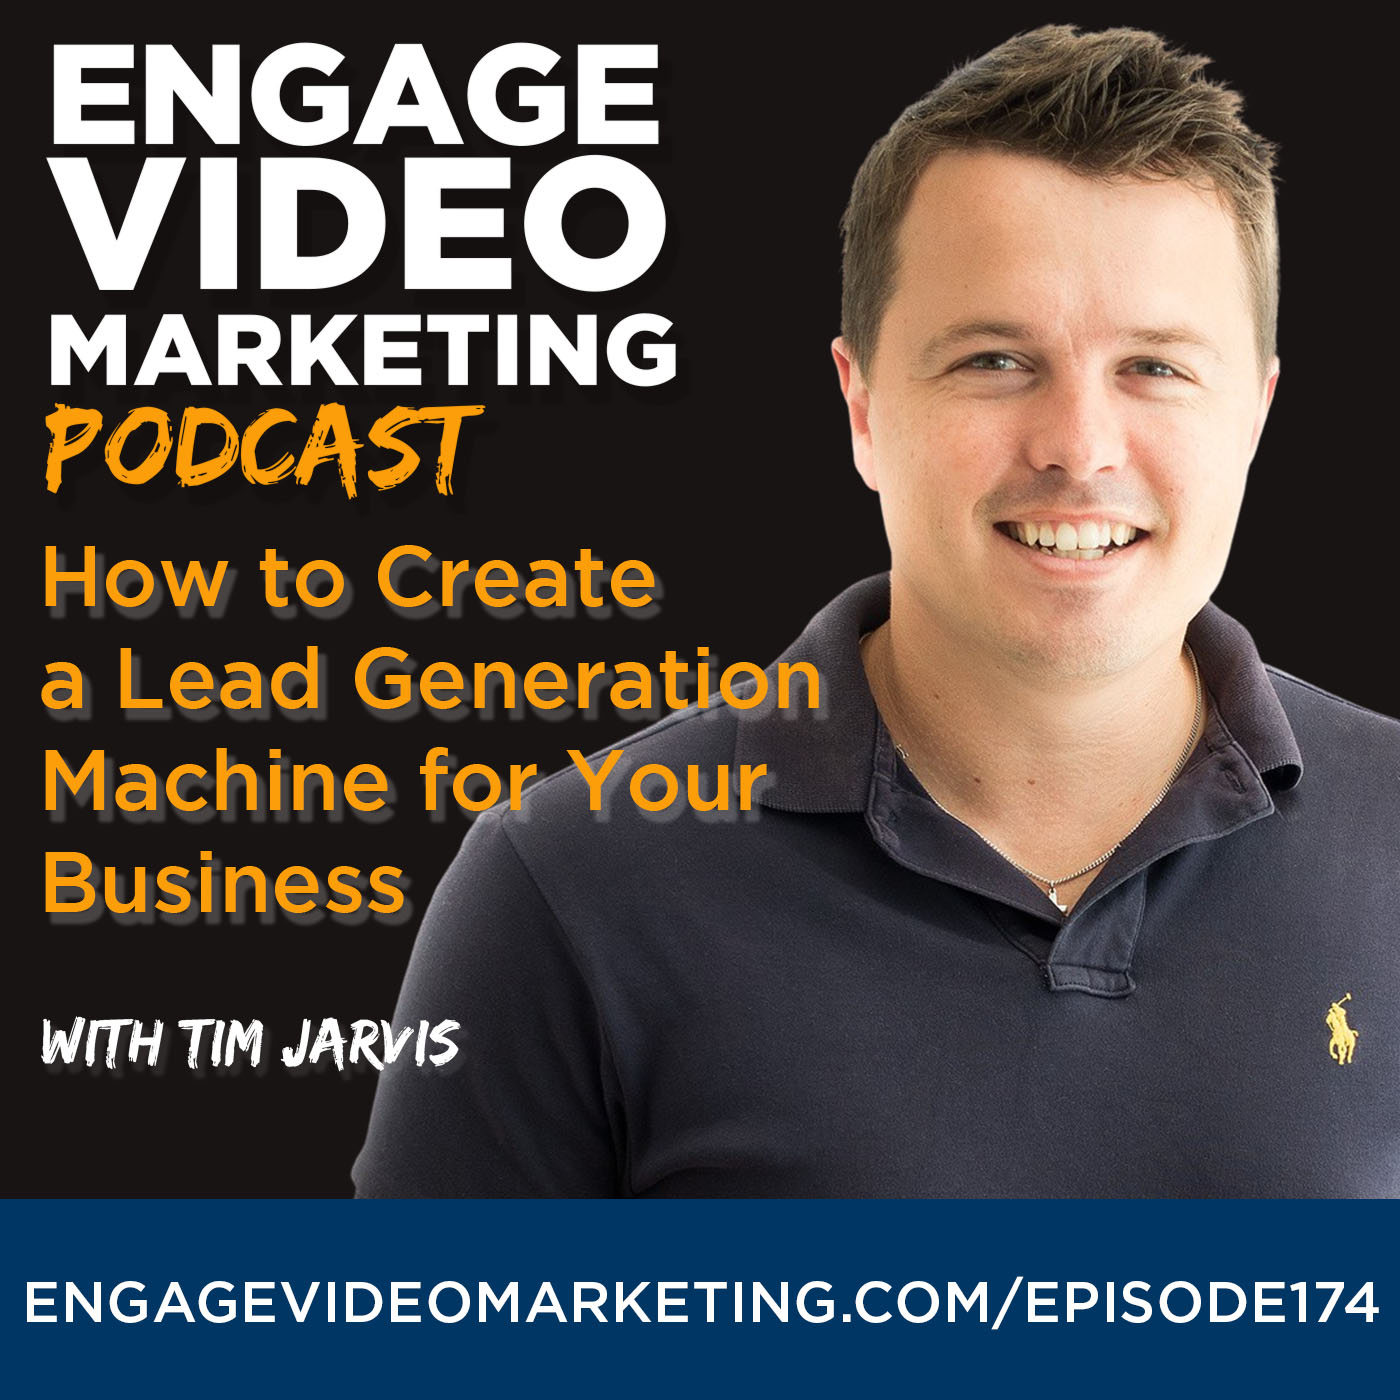 Artwork for podcast Engage Video Marketing Podcast